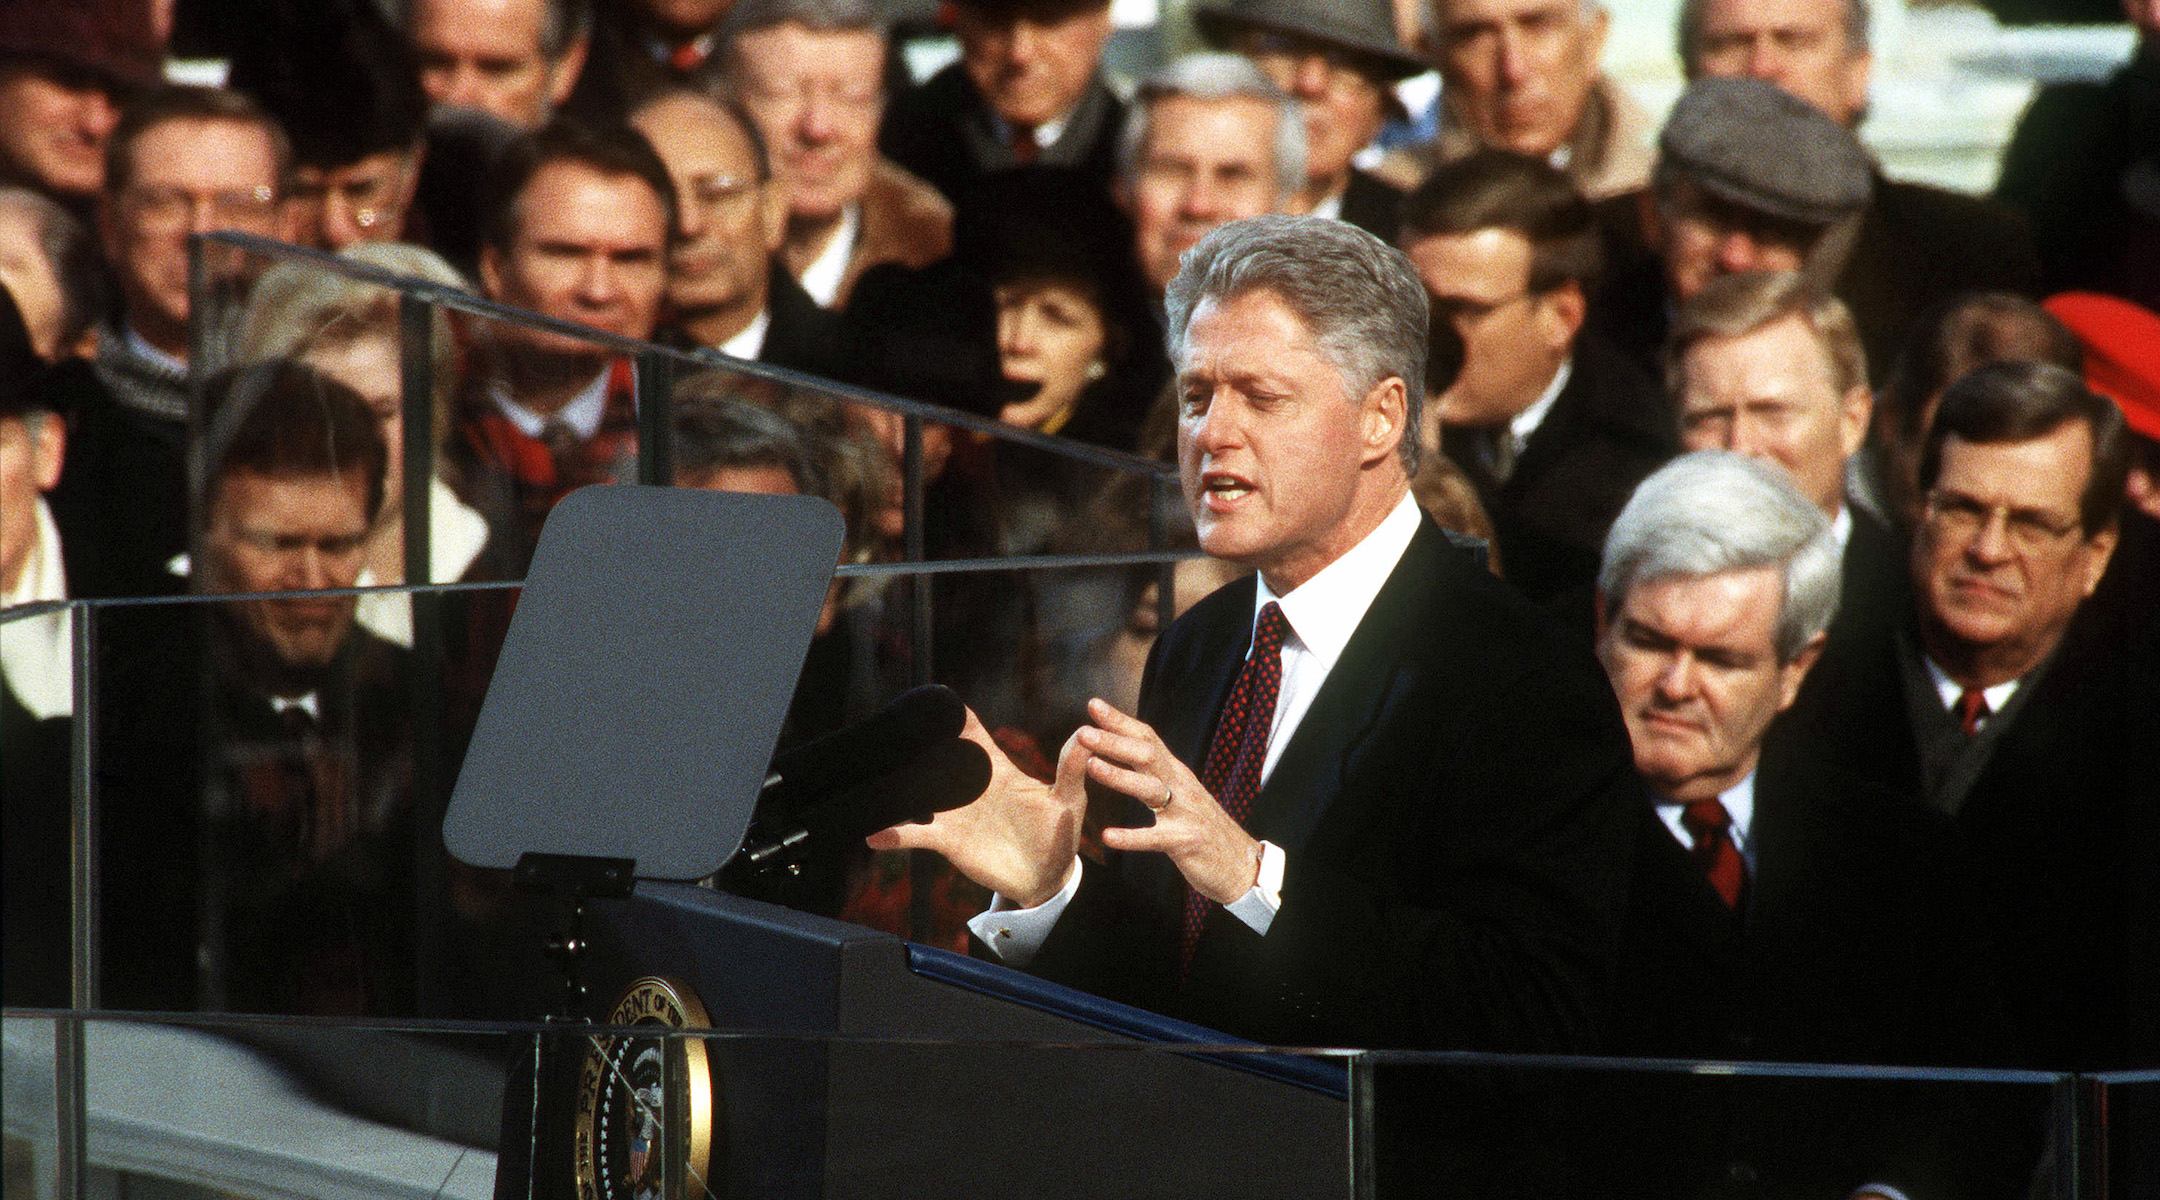 Bill Clinton gives his inaugural address in front of the capitol, Jan. 20, 1997. (AFIC/Wikimedia Commons)